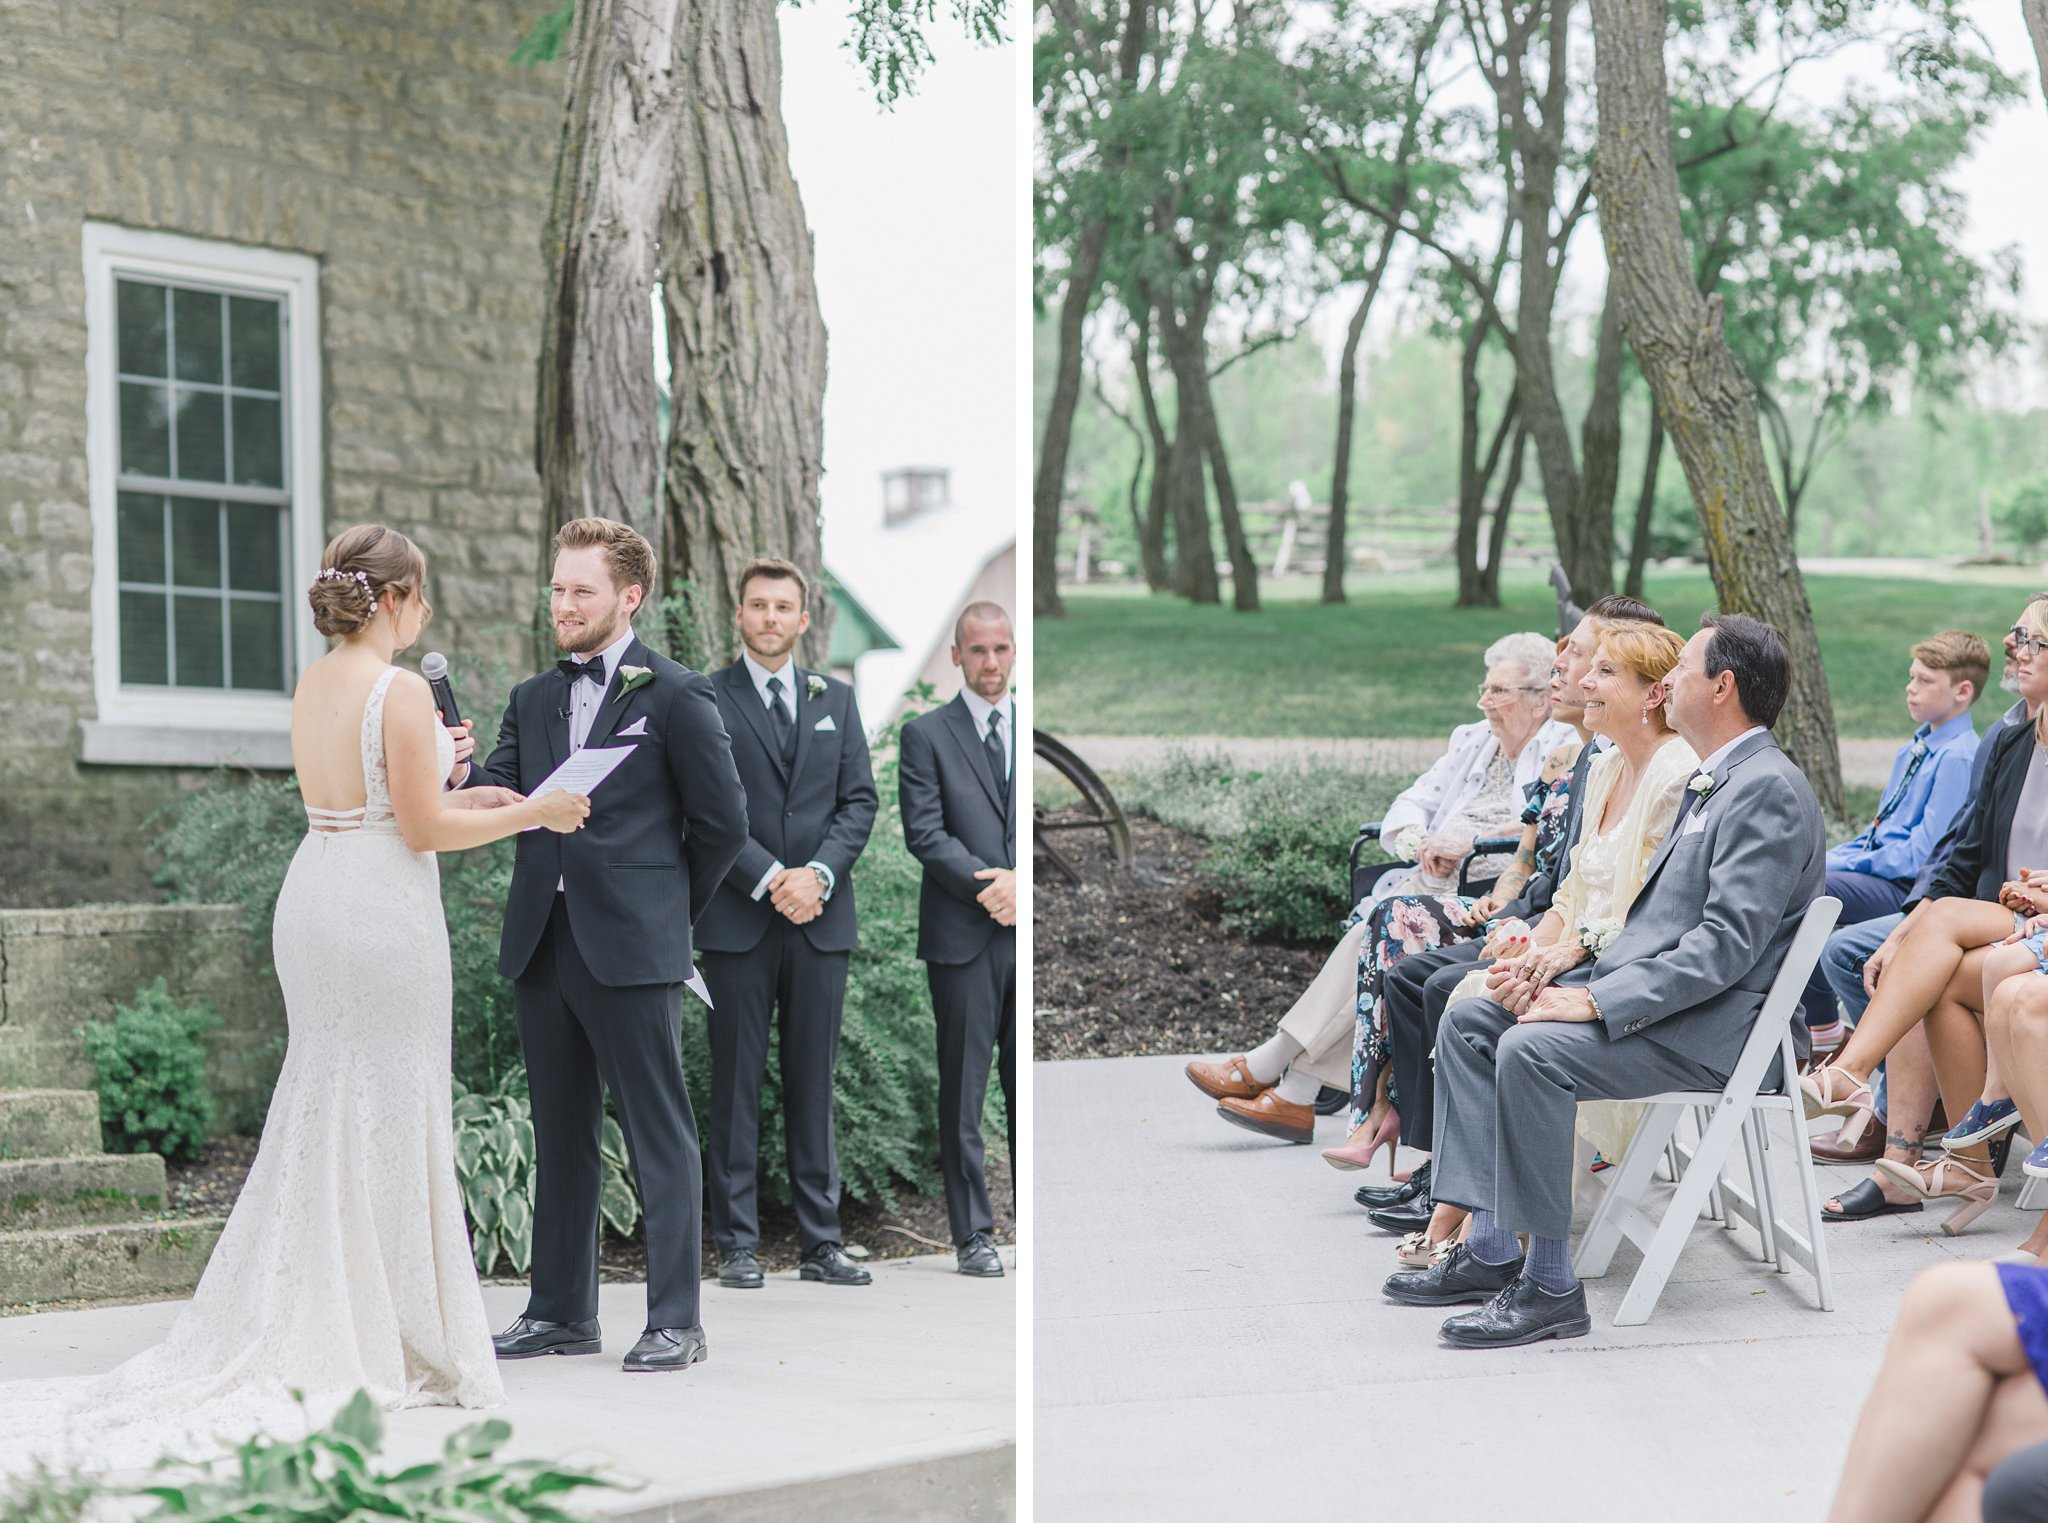 Exchanging vows married at Stonefields, Amy Pinder Photography